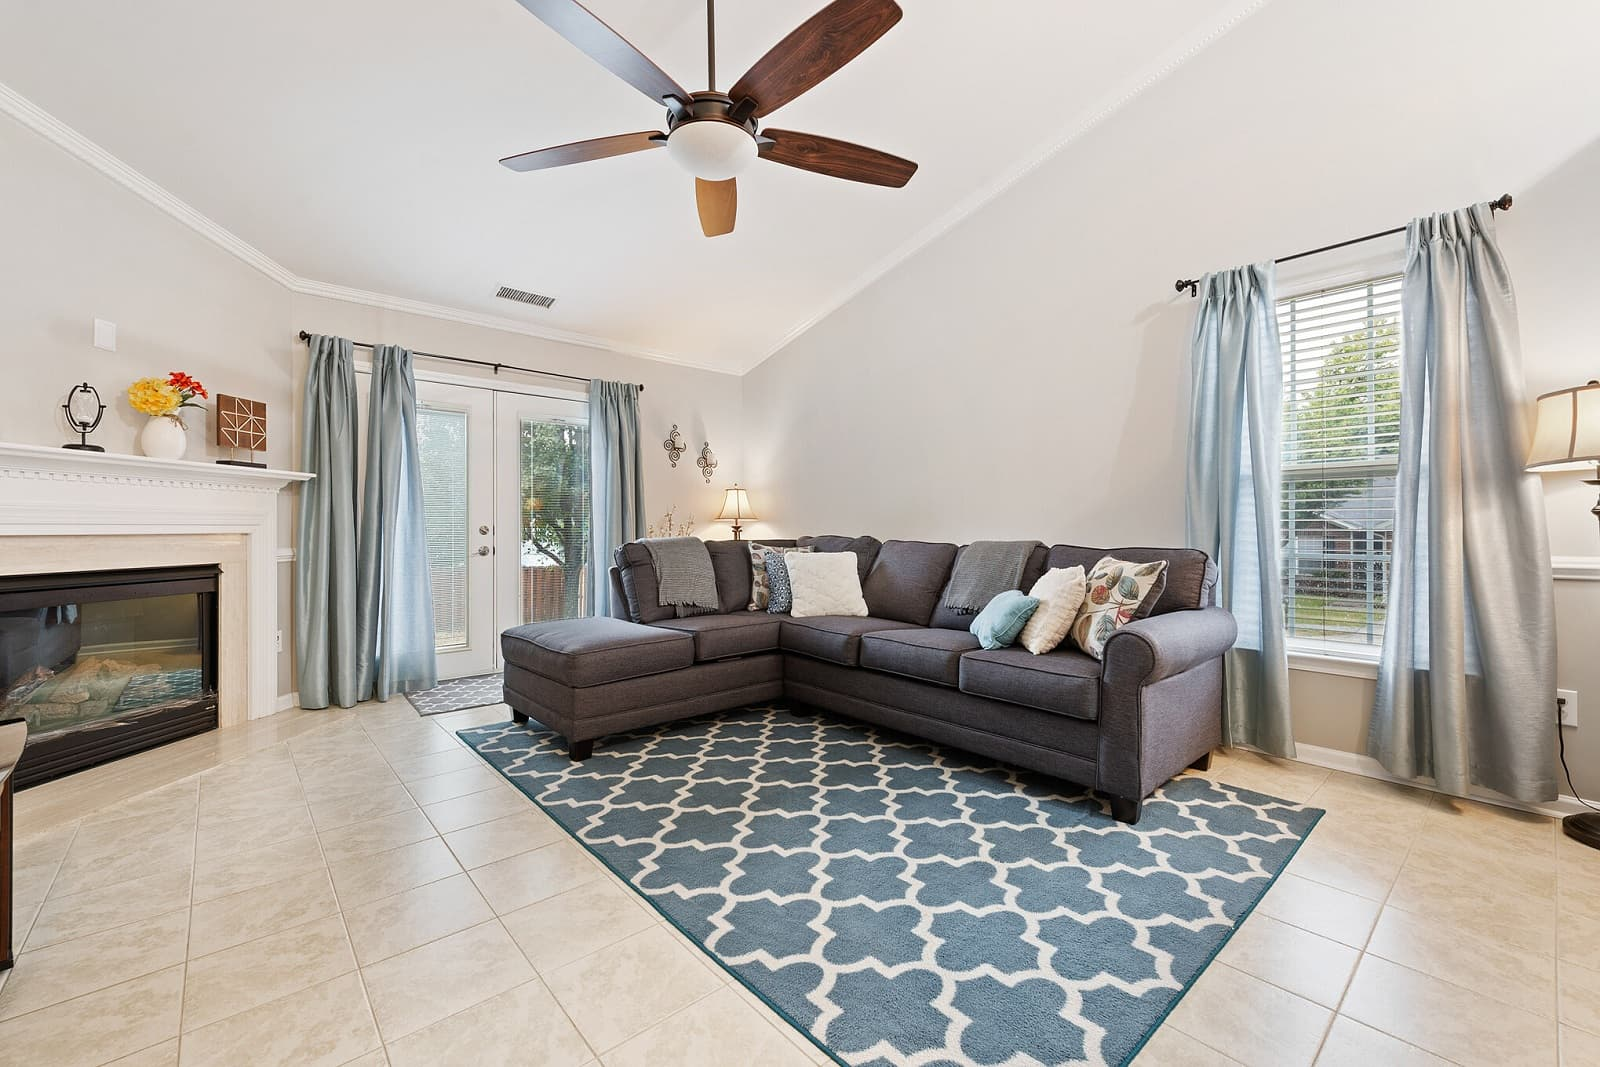 Real Estate Photography in Charlotte - NC - USA - Living Area View